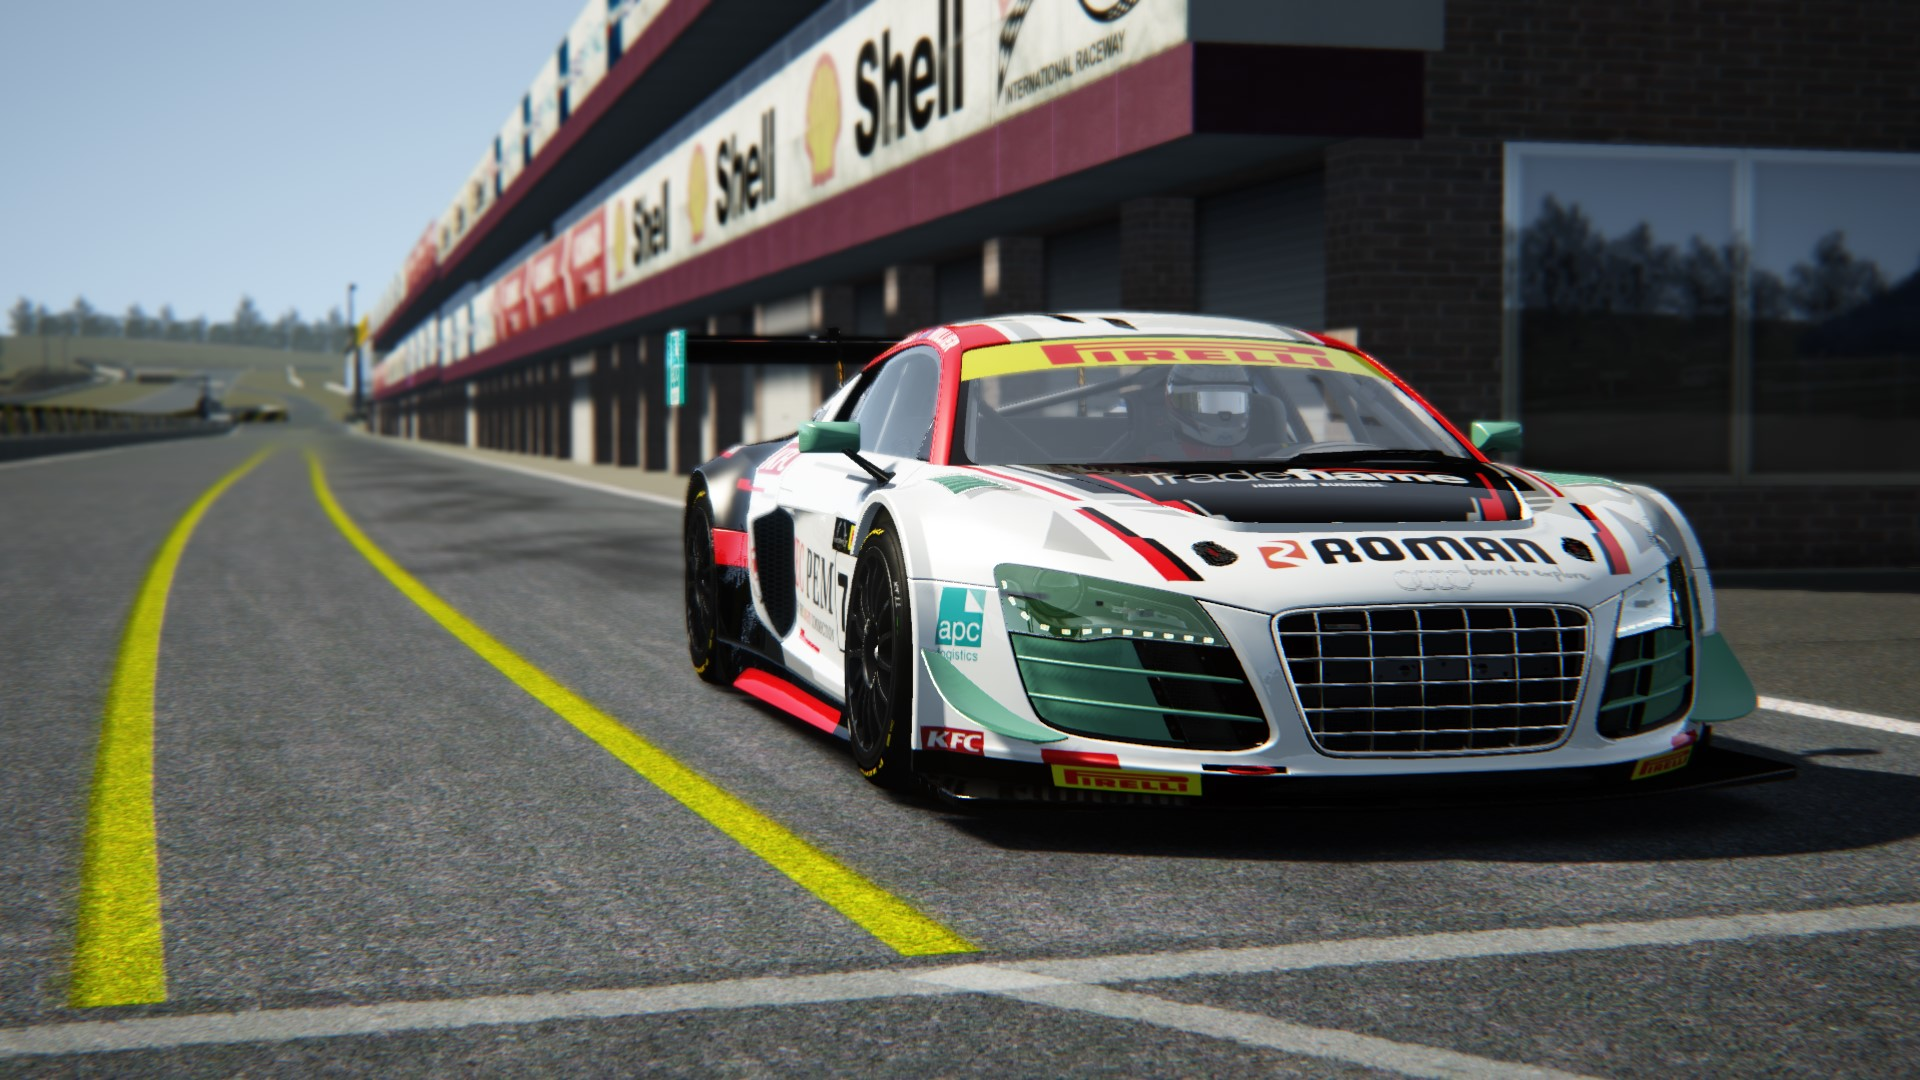 Screenshot_ks_audi_r8_lms_eastern_creek2014_25-11-115-11-59-48.jpg